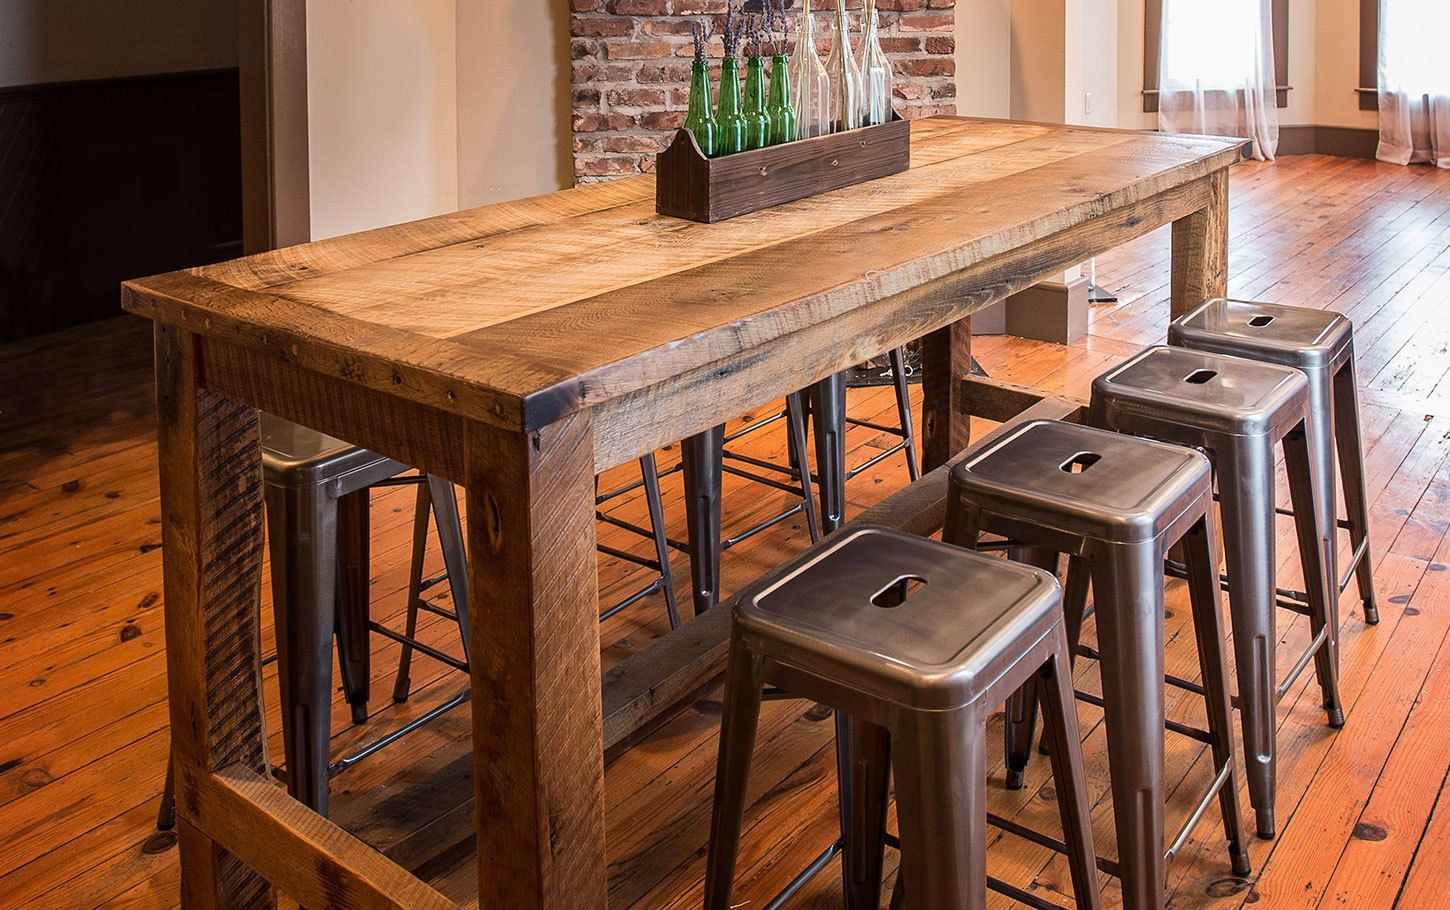 The Hemingway Pub Table Nlb Furniture Pub Kitchen Table Kitchen Bar Table Pub Table And Chairs Rustic high top table and chairs